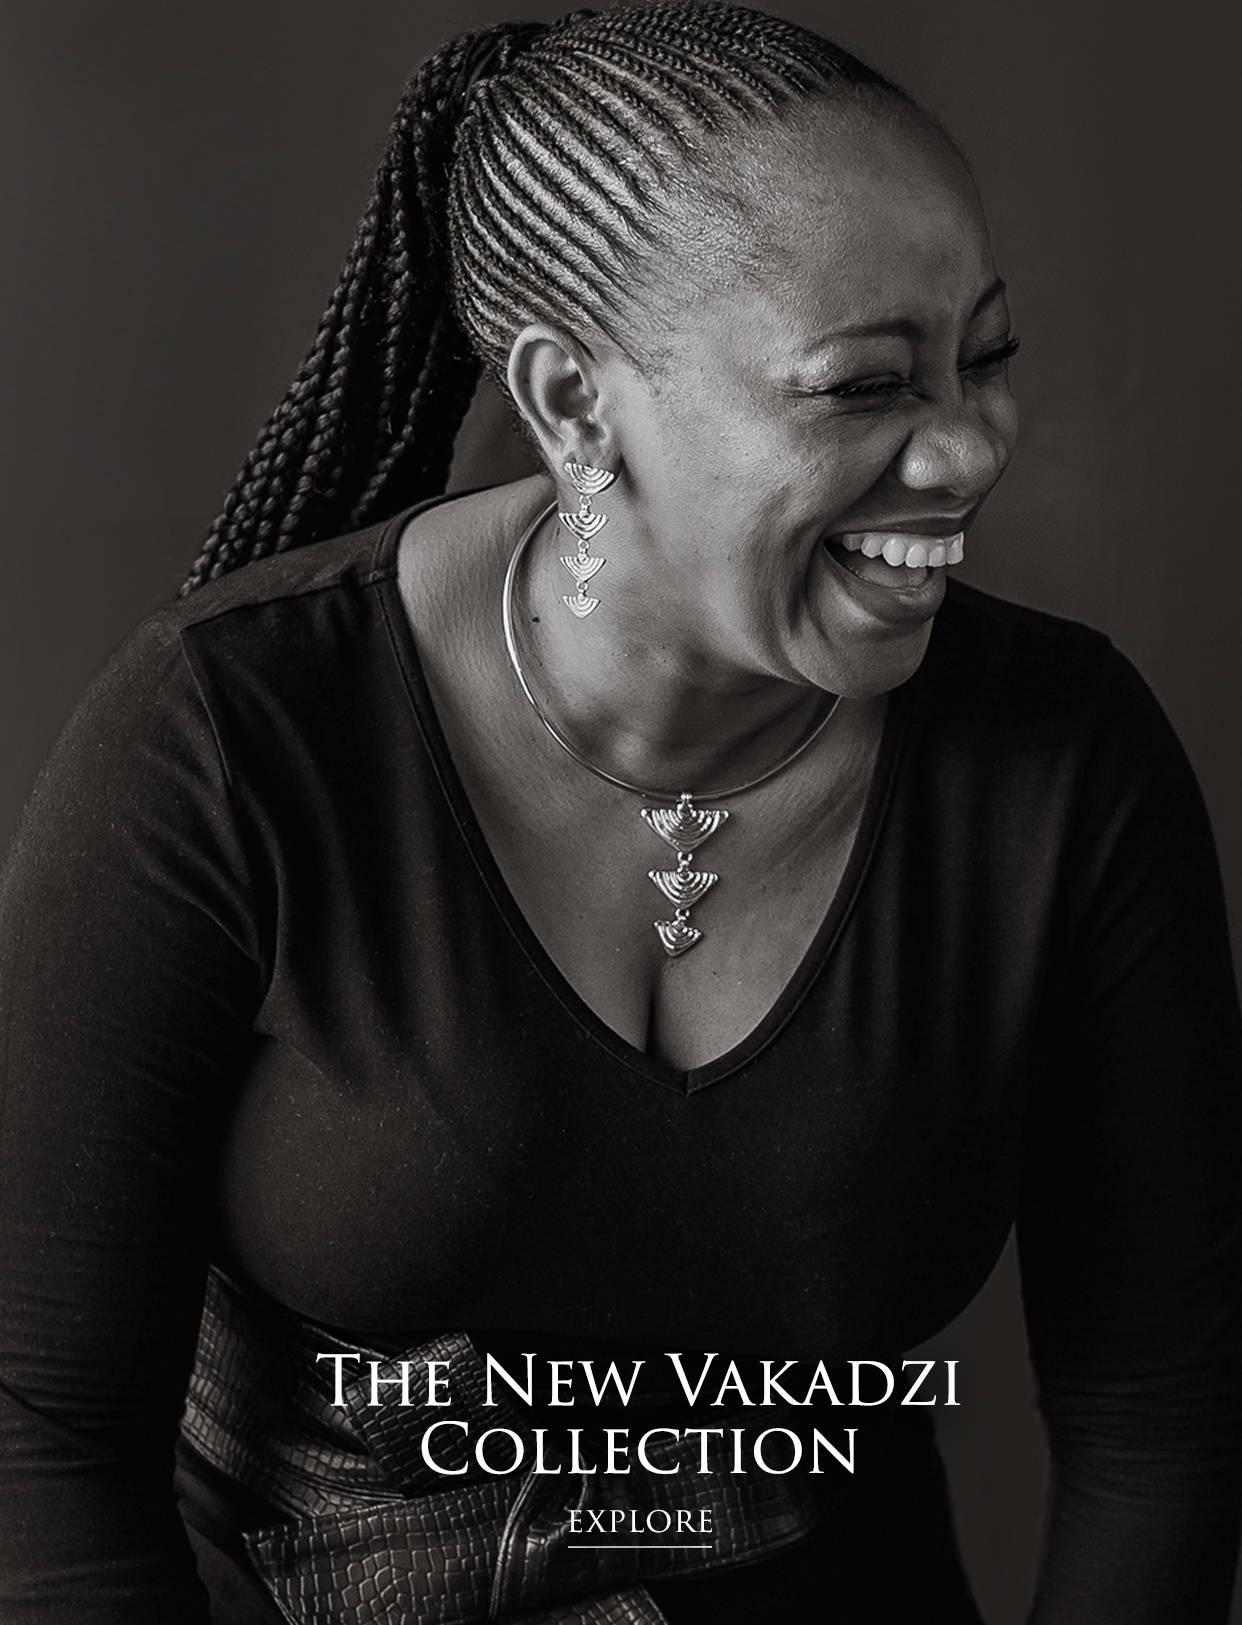 Explore The Vakadzi Collection Our Tribute to Women